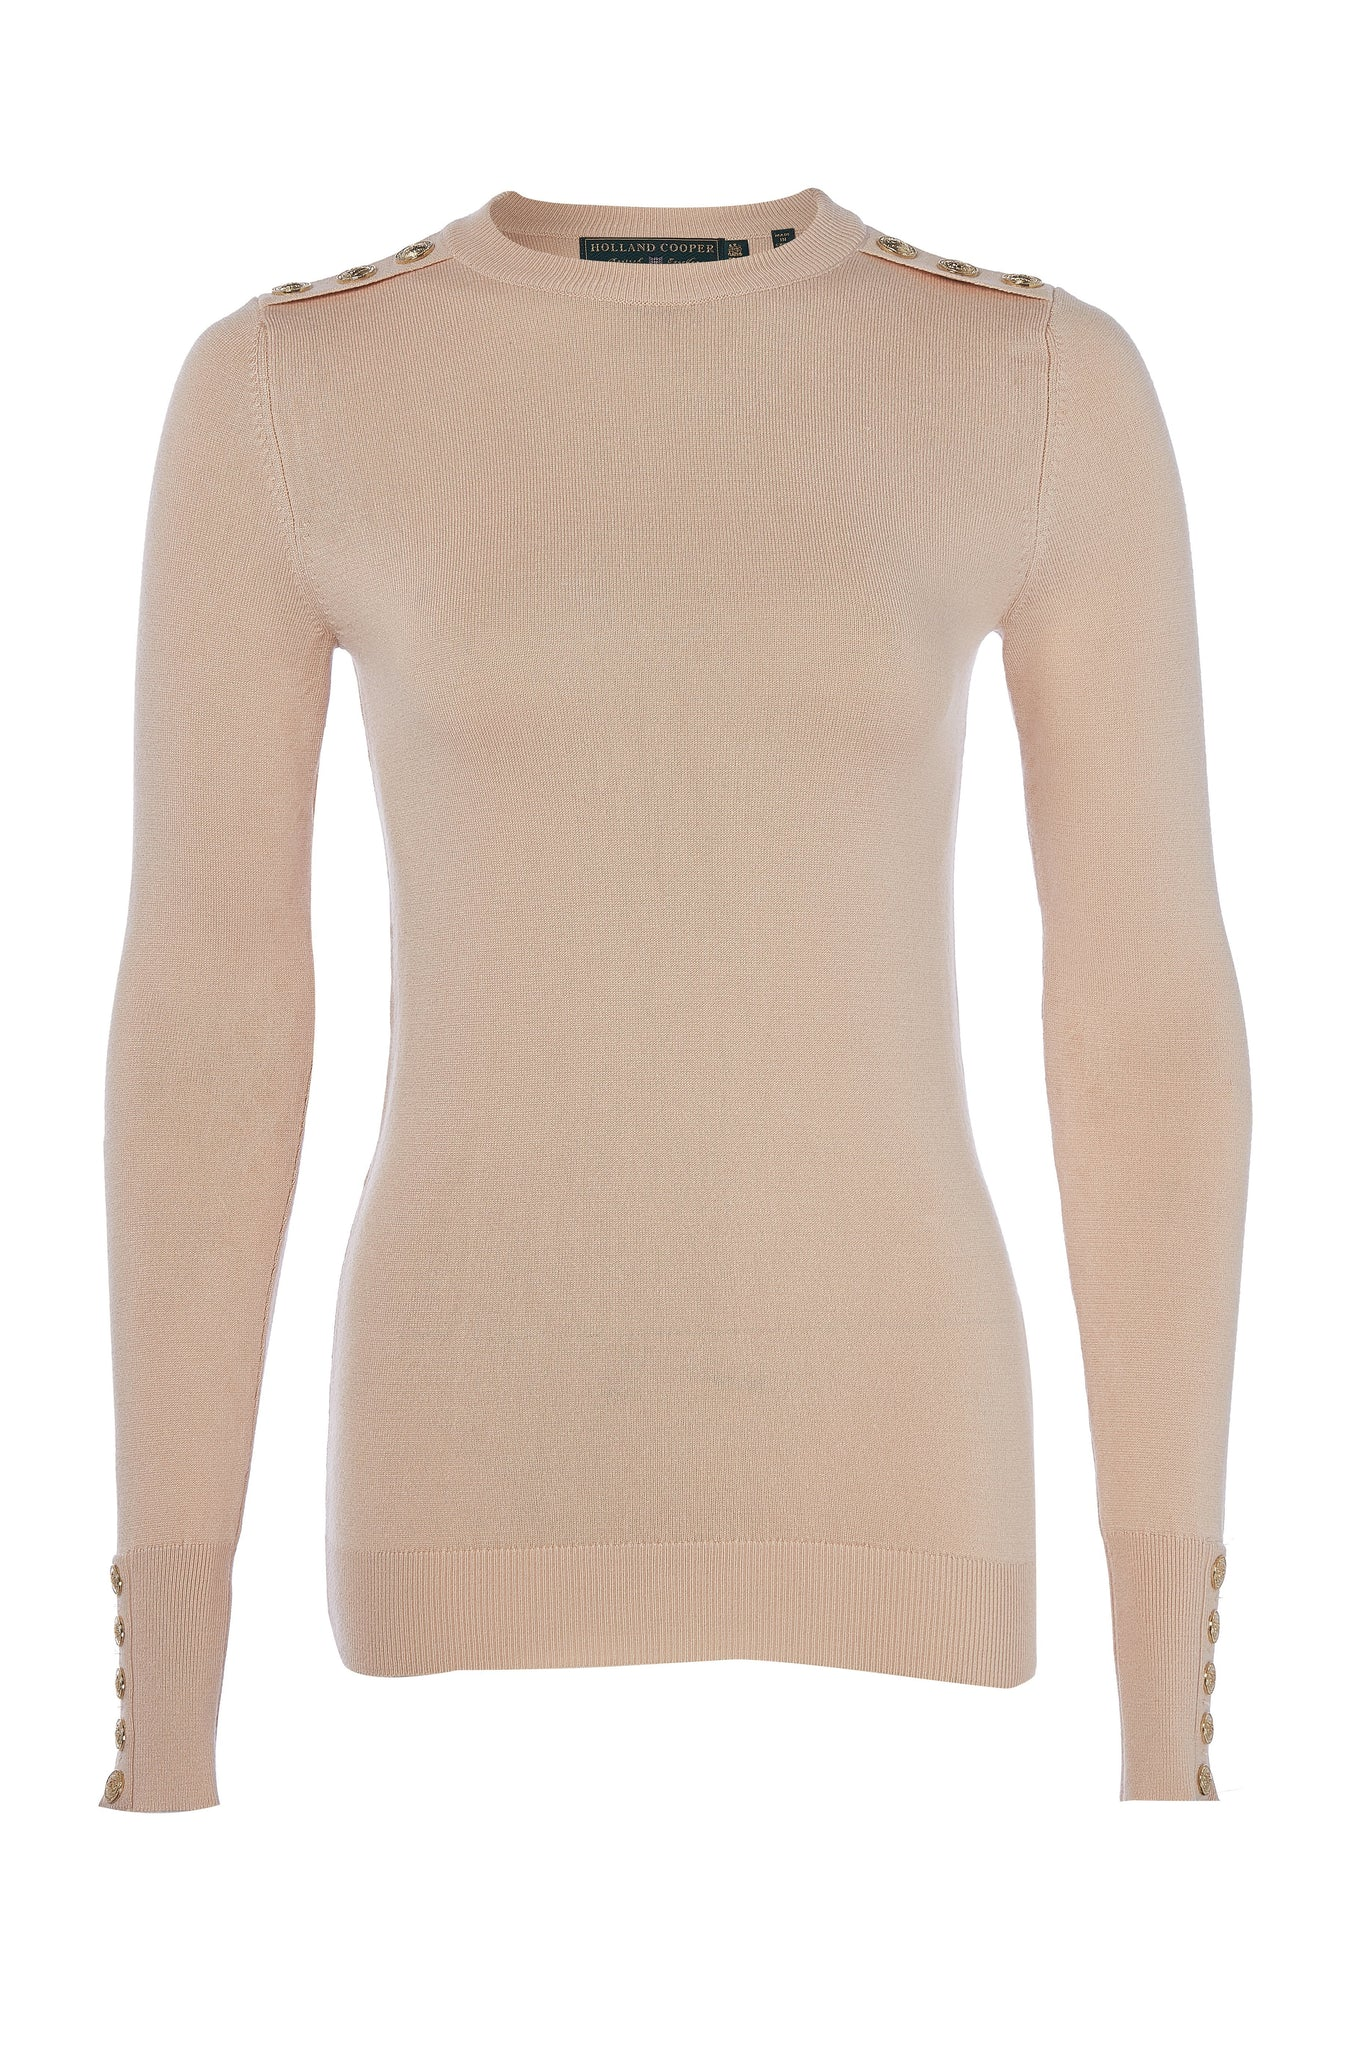 Buttoned Knit Crew Neck (Light Camel Marl)